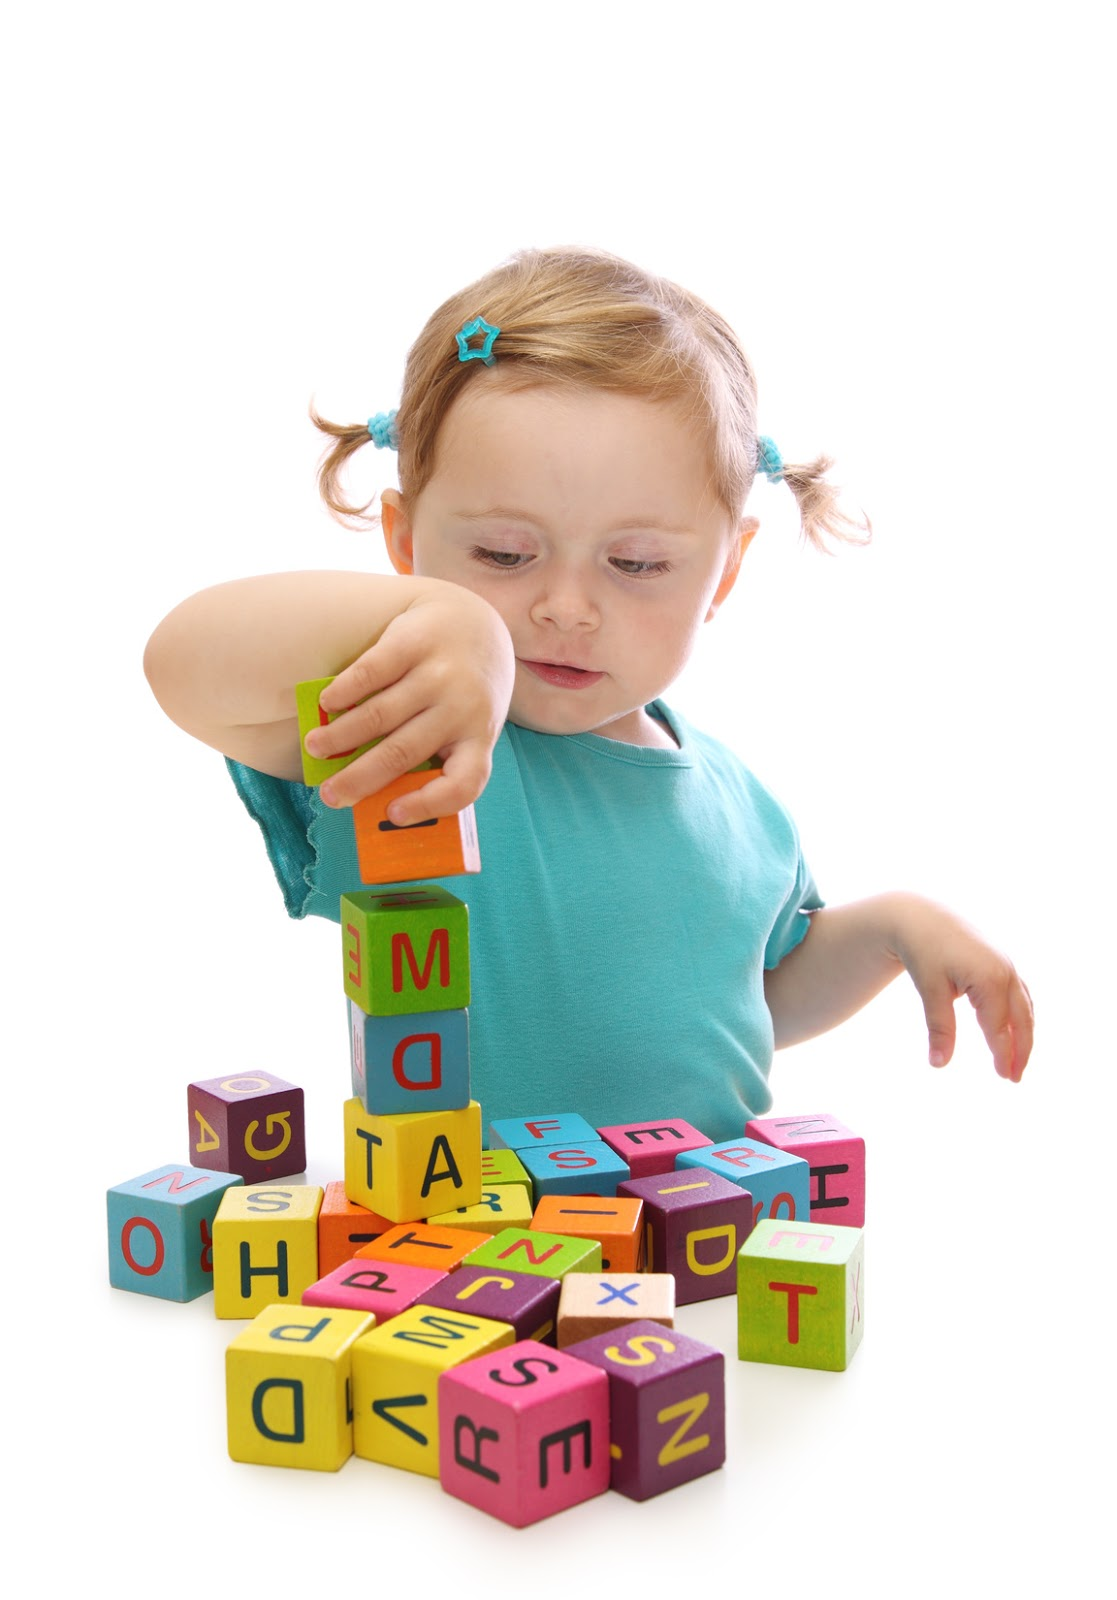 Human, Toy Benefits of Providing Educational Toys To Children